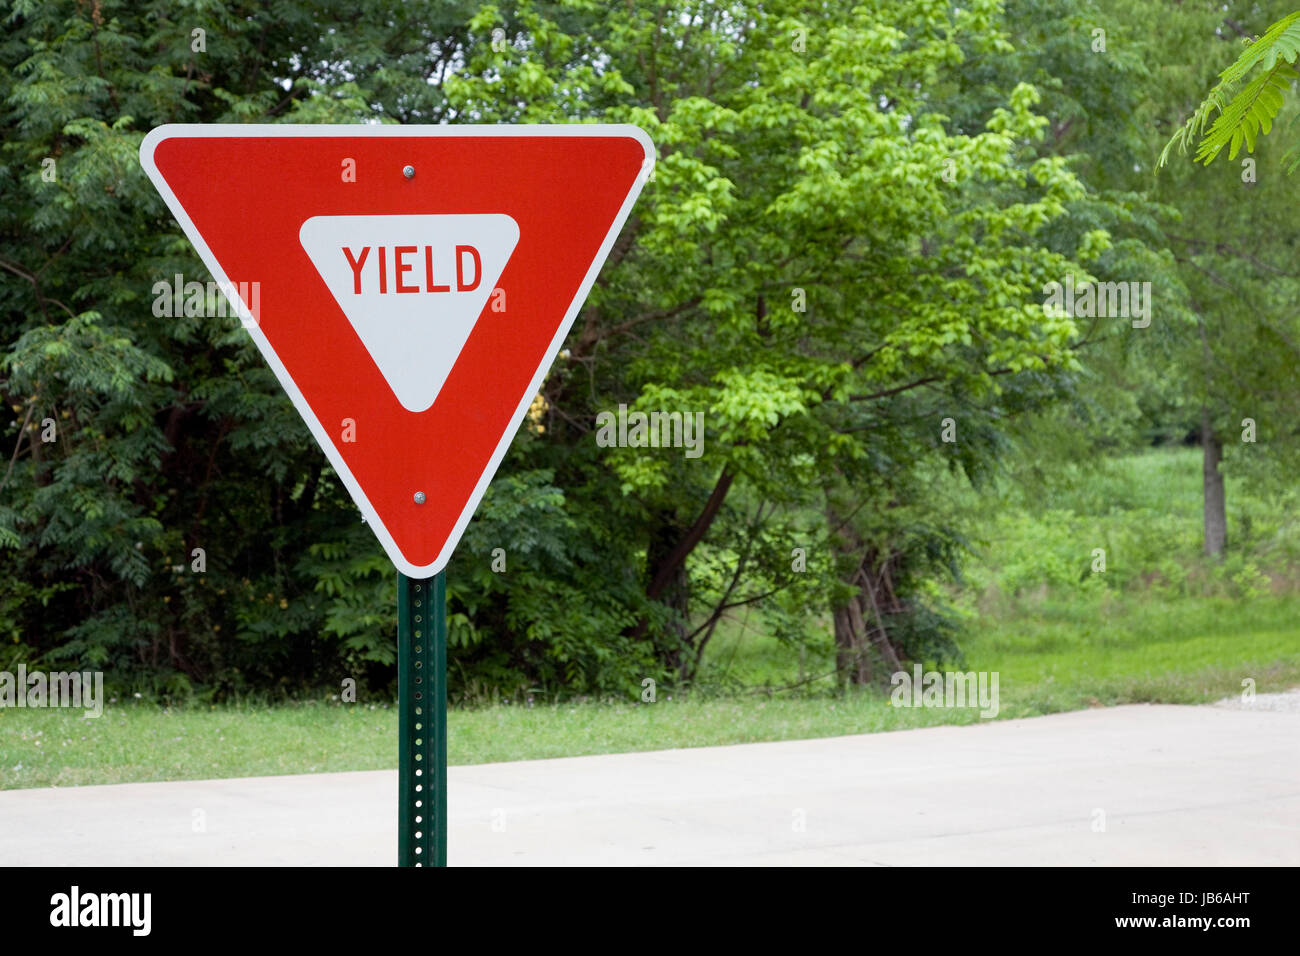 Yield Sign In A Park - Stock Image